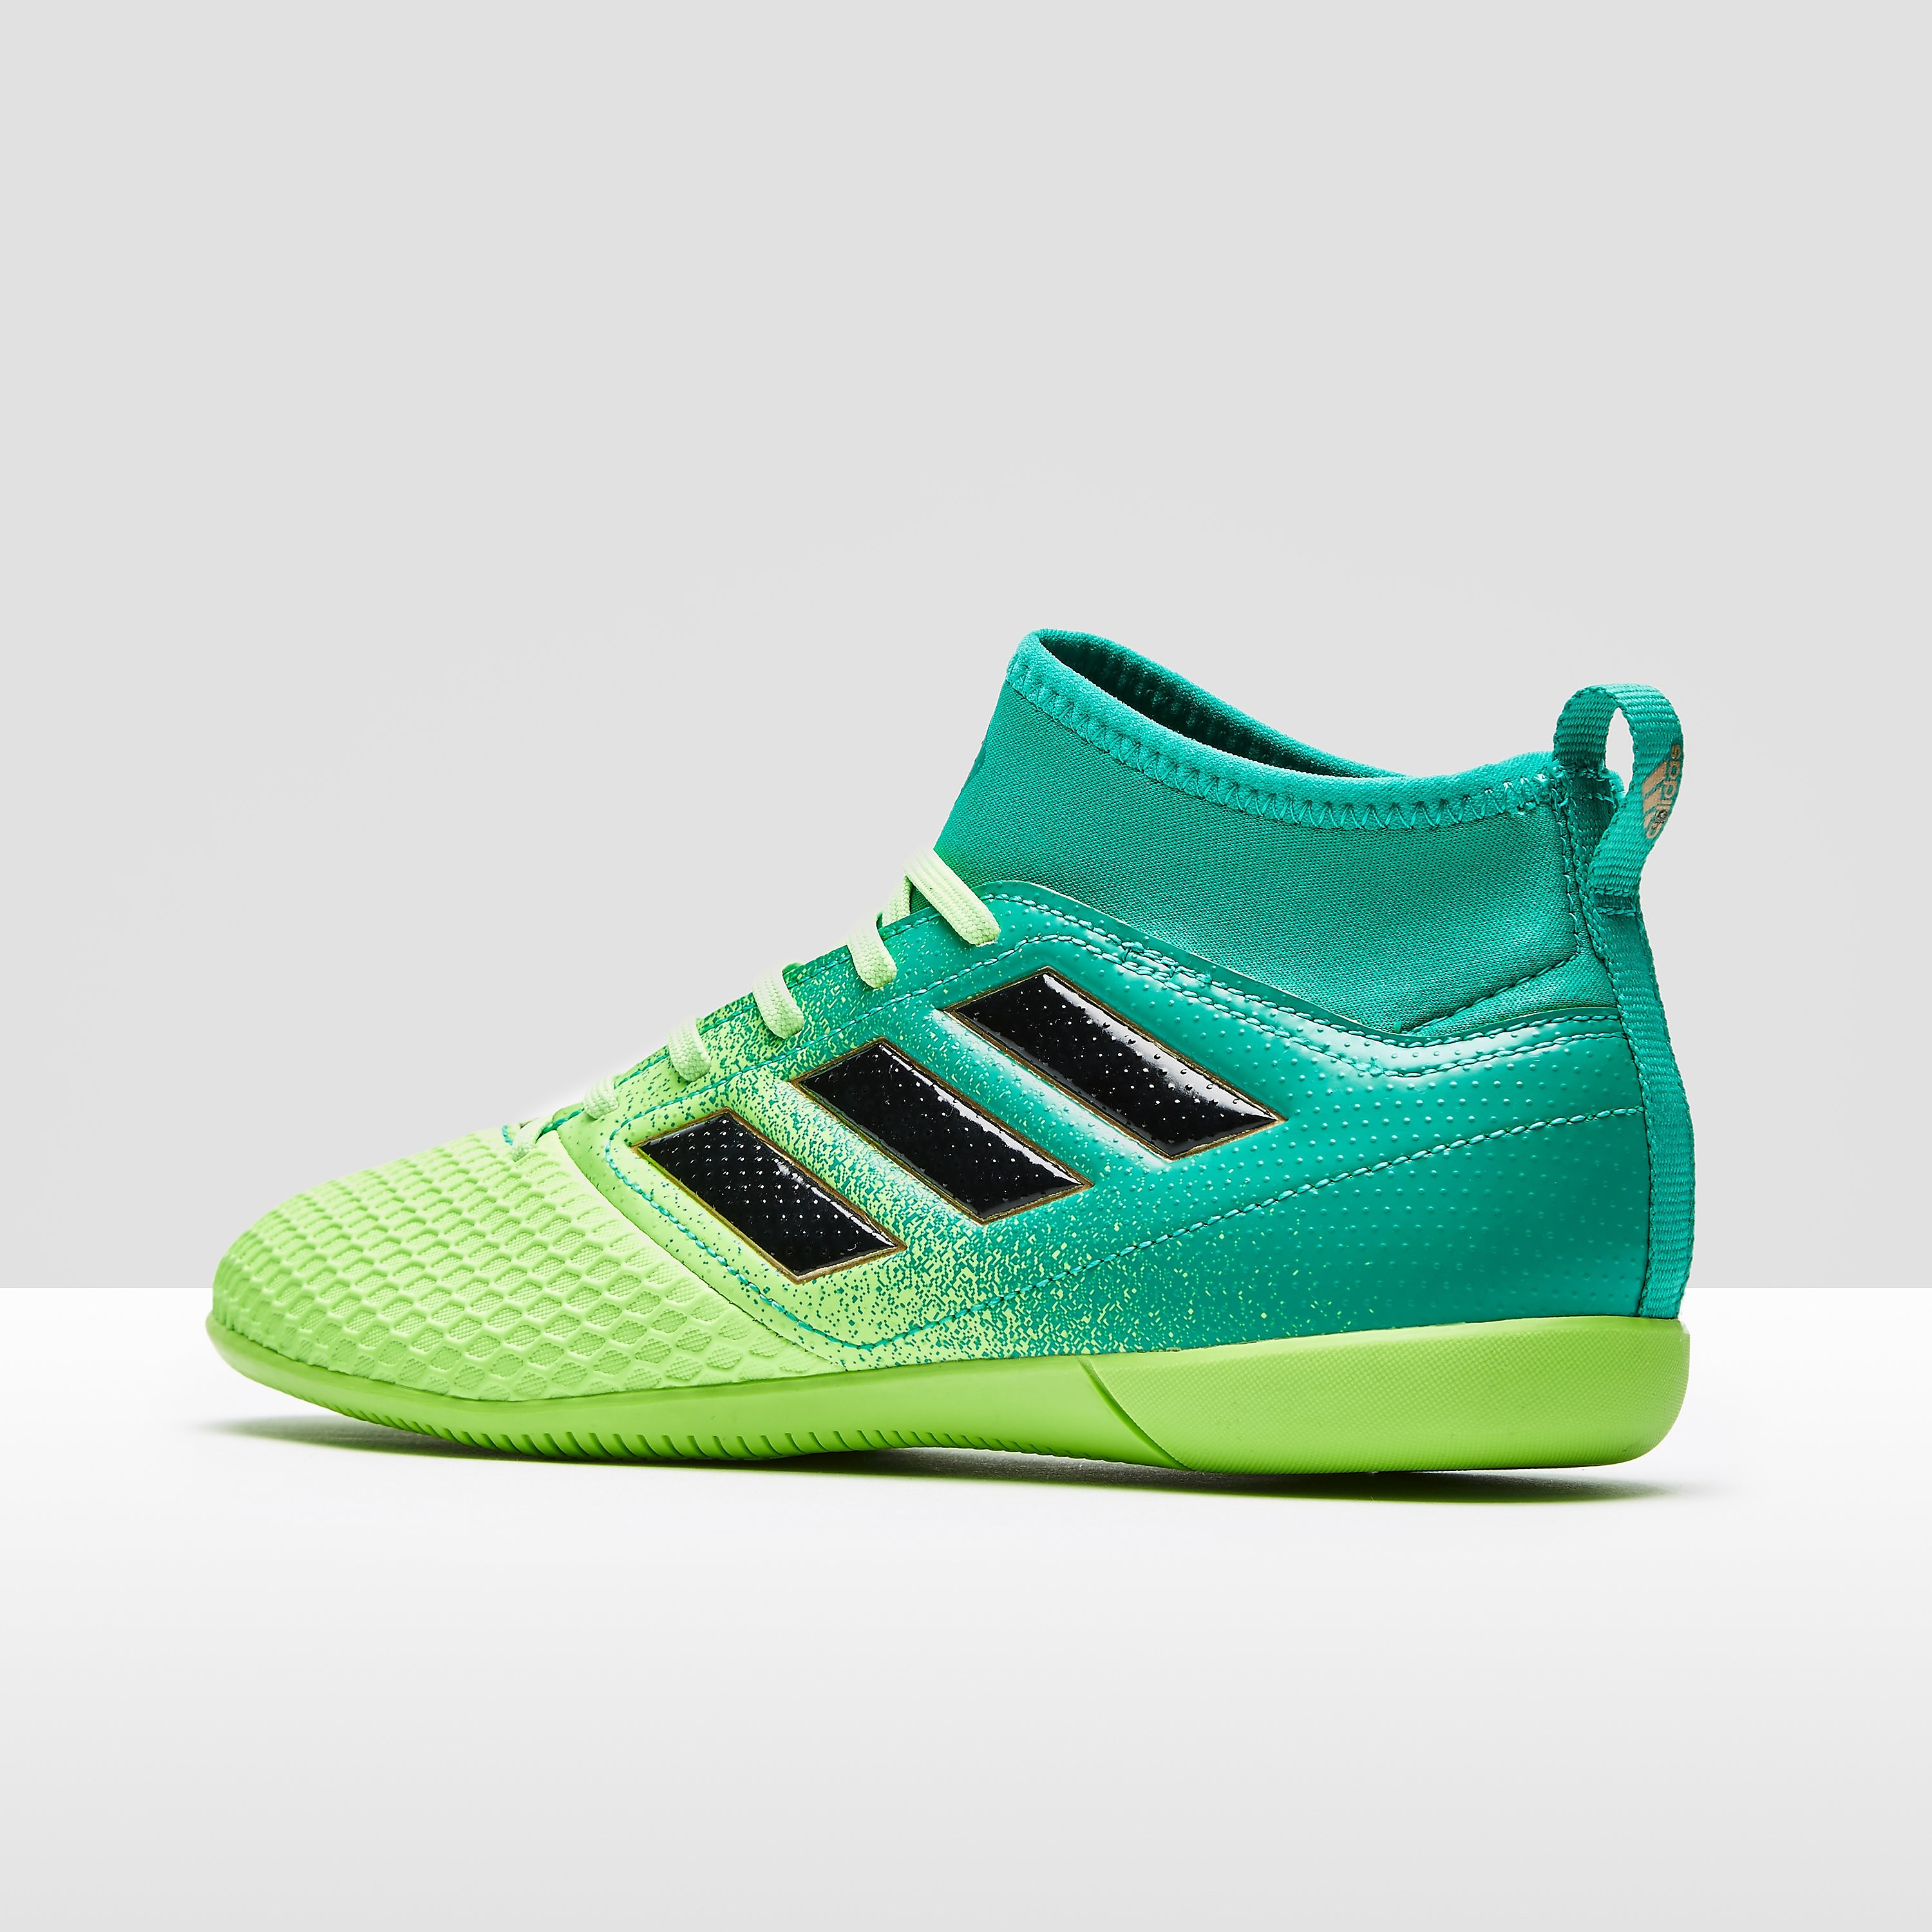 adidas Turbocharge Ace 17.3 IC Children's Football Boots